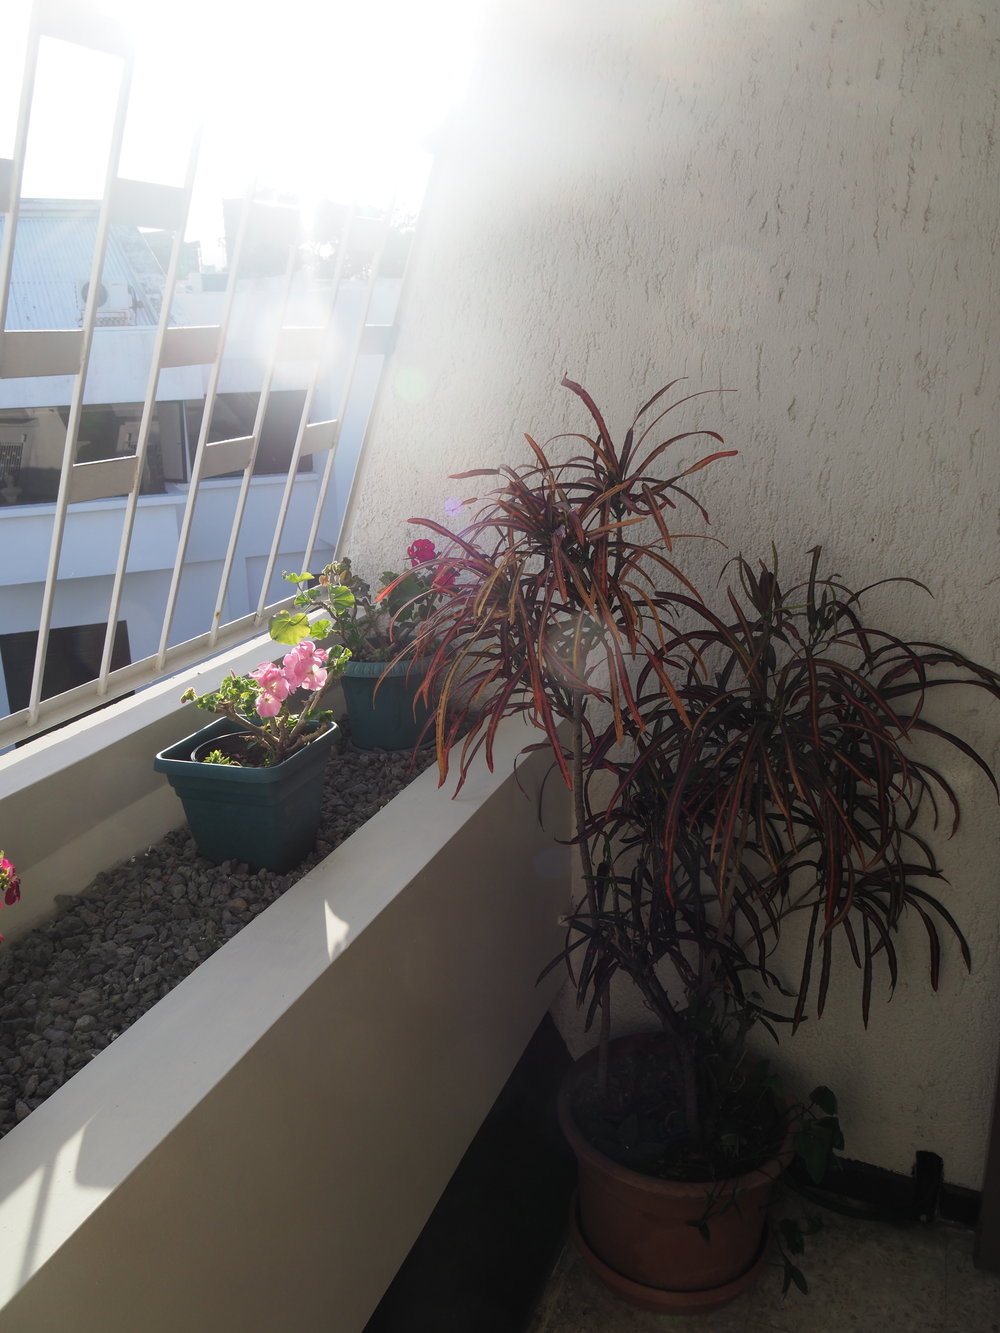 Plants on the caged-in balcony of our Airbnb